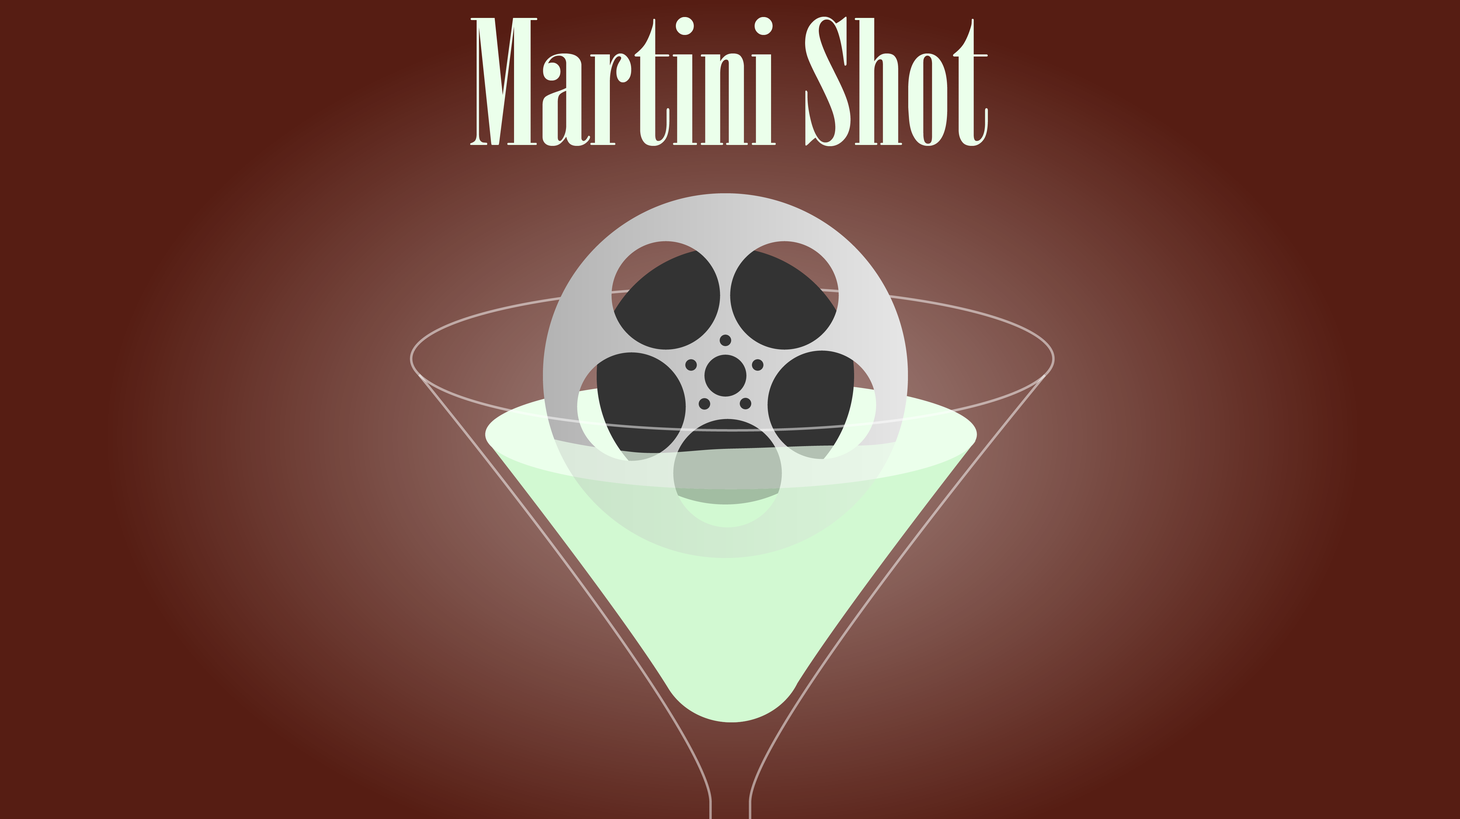 This is Rob Long and on today's Martini Shot I hypothetically and with names changed, explore some of the ways writers get scripts written, from Adderall to ten micrograms of LSD, everything but just sitting down and doing the work.